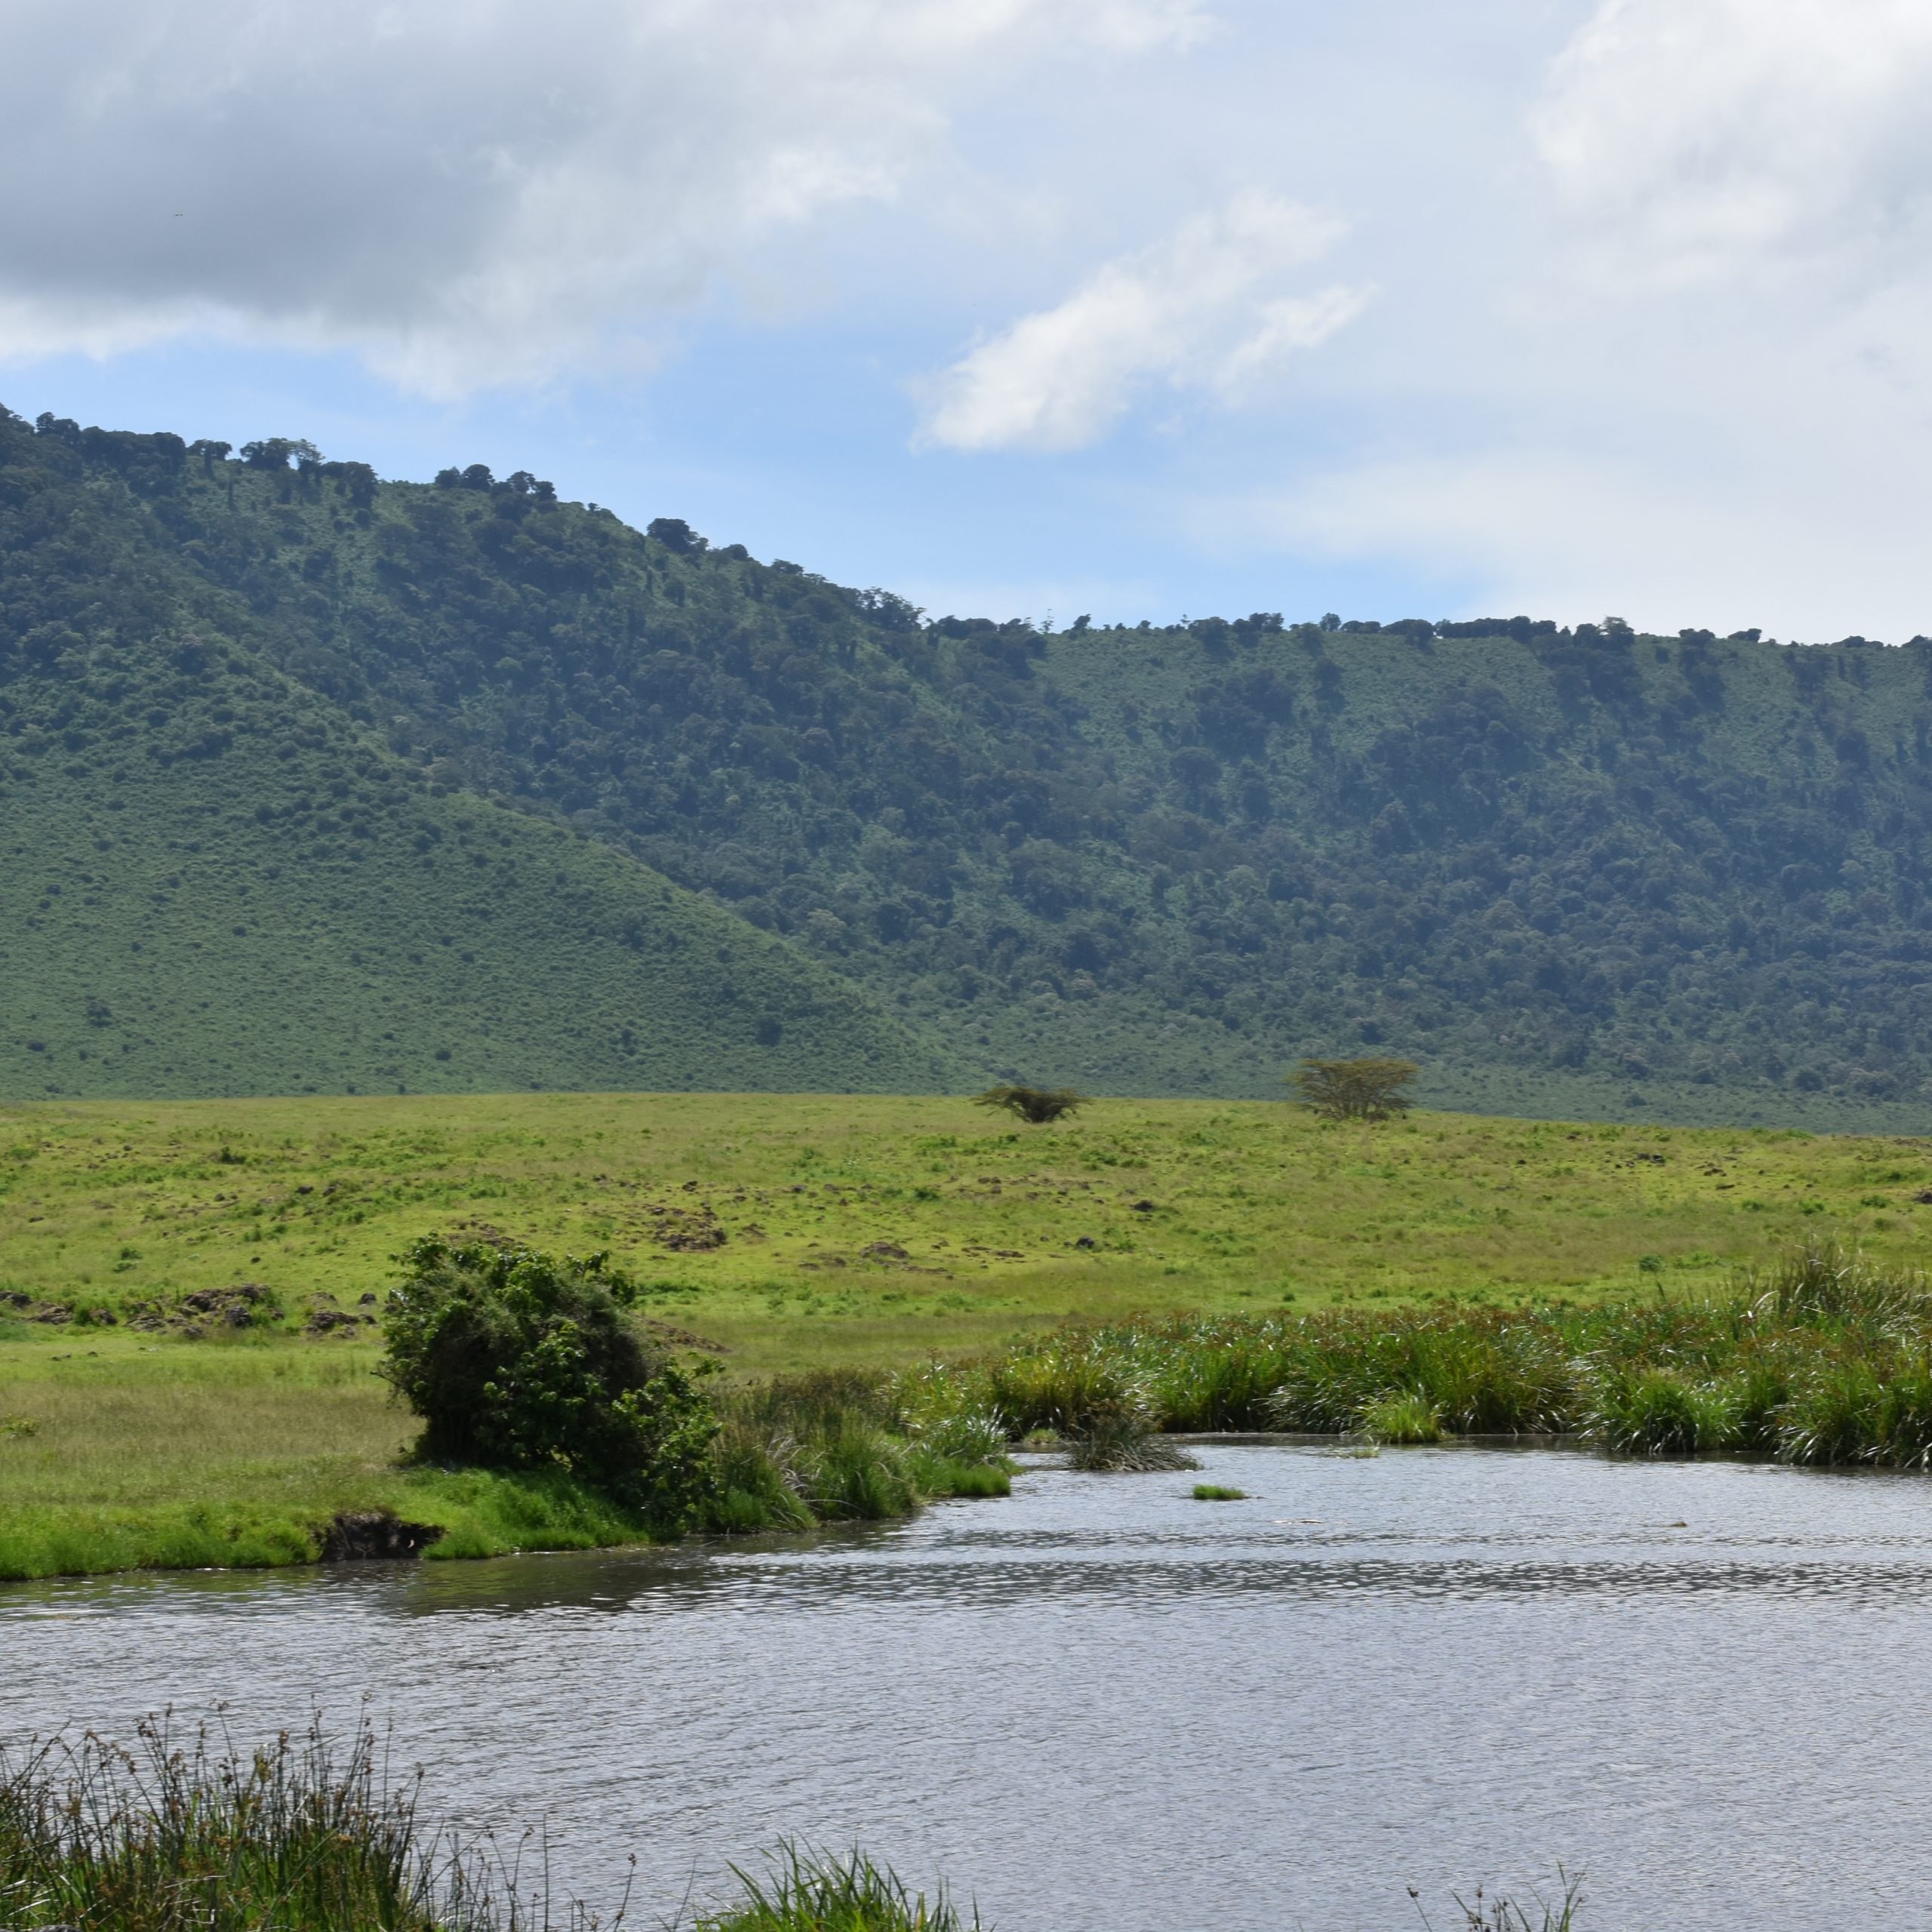 Day 2: Kudu Lodge - Ngorongoro Crater - Lake Burunge Tented Camp